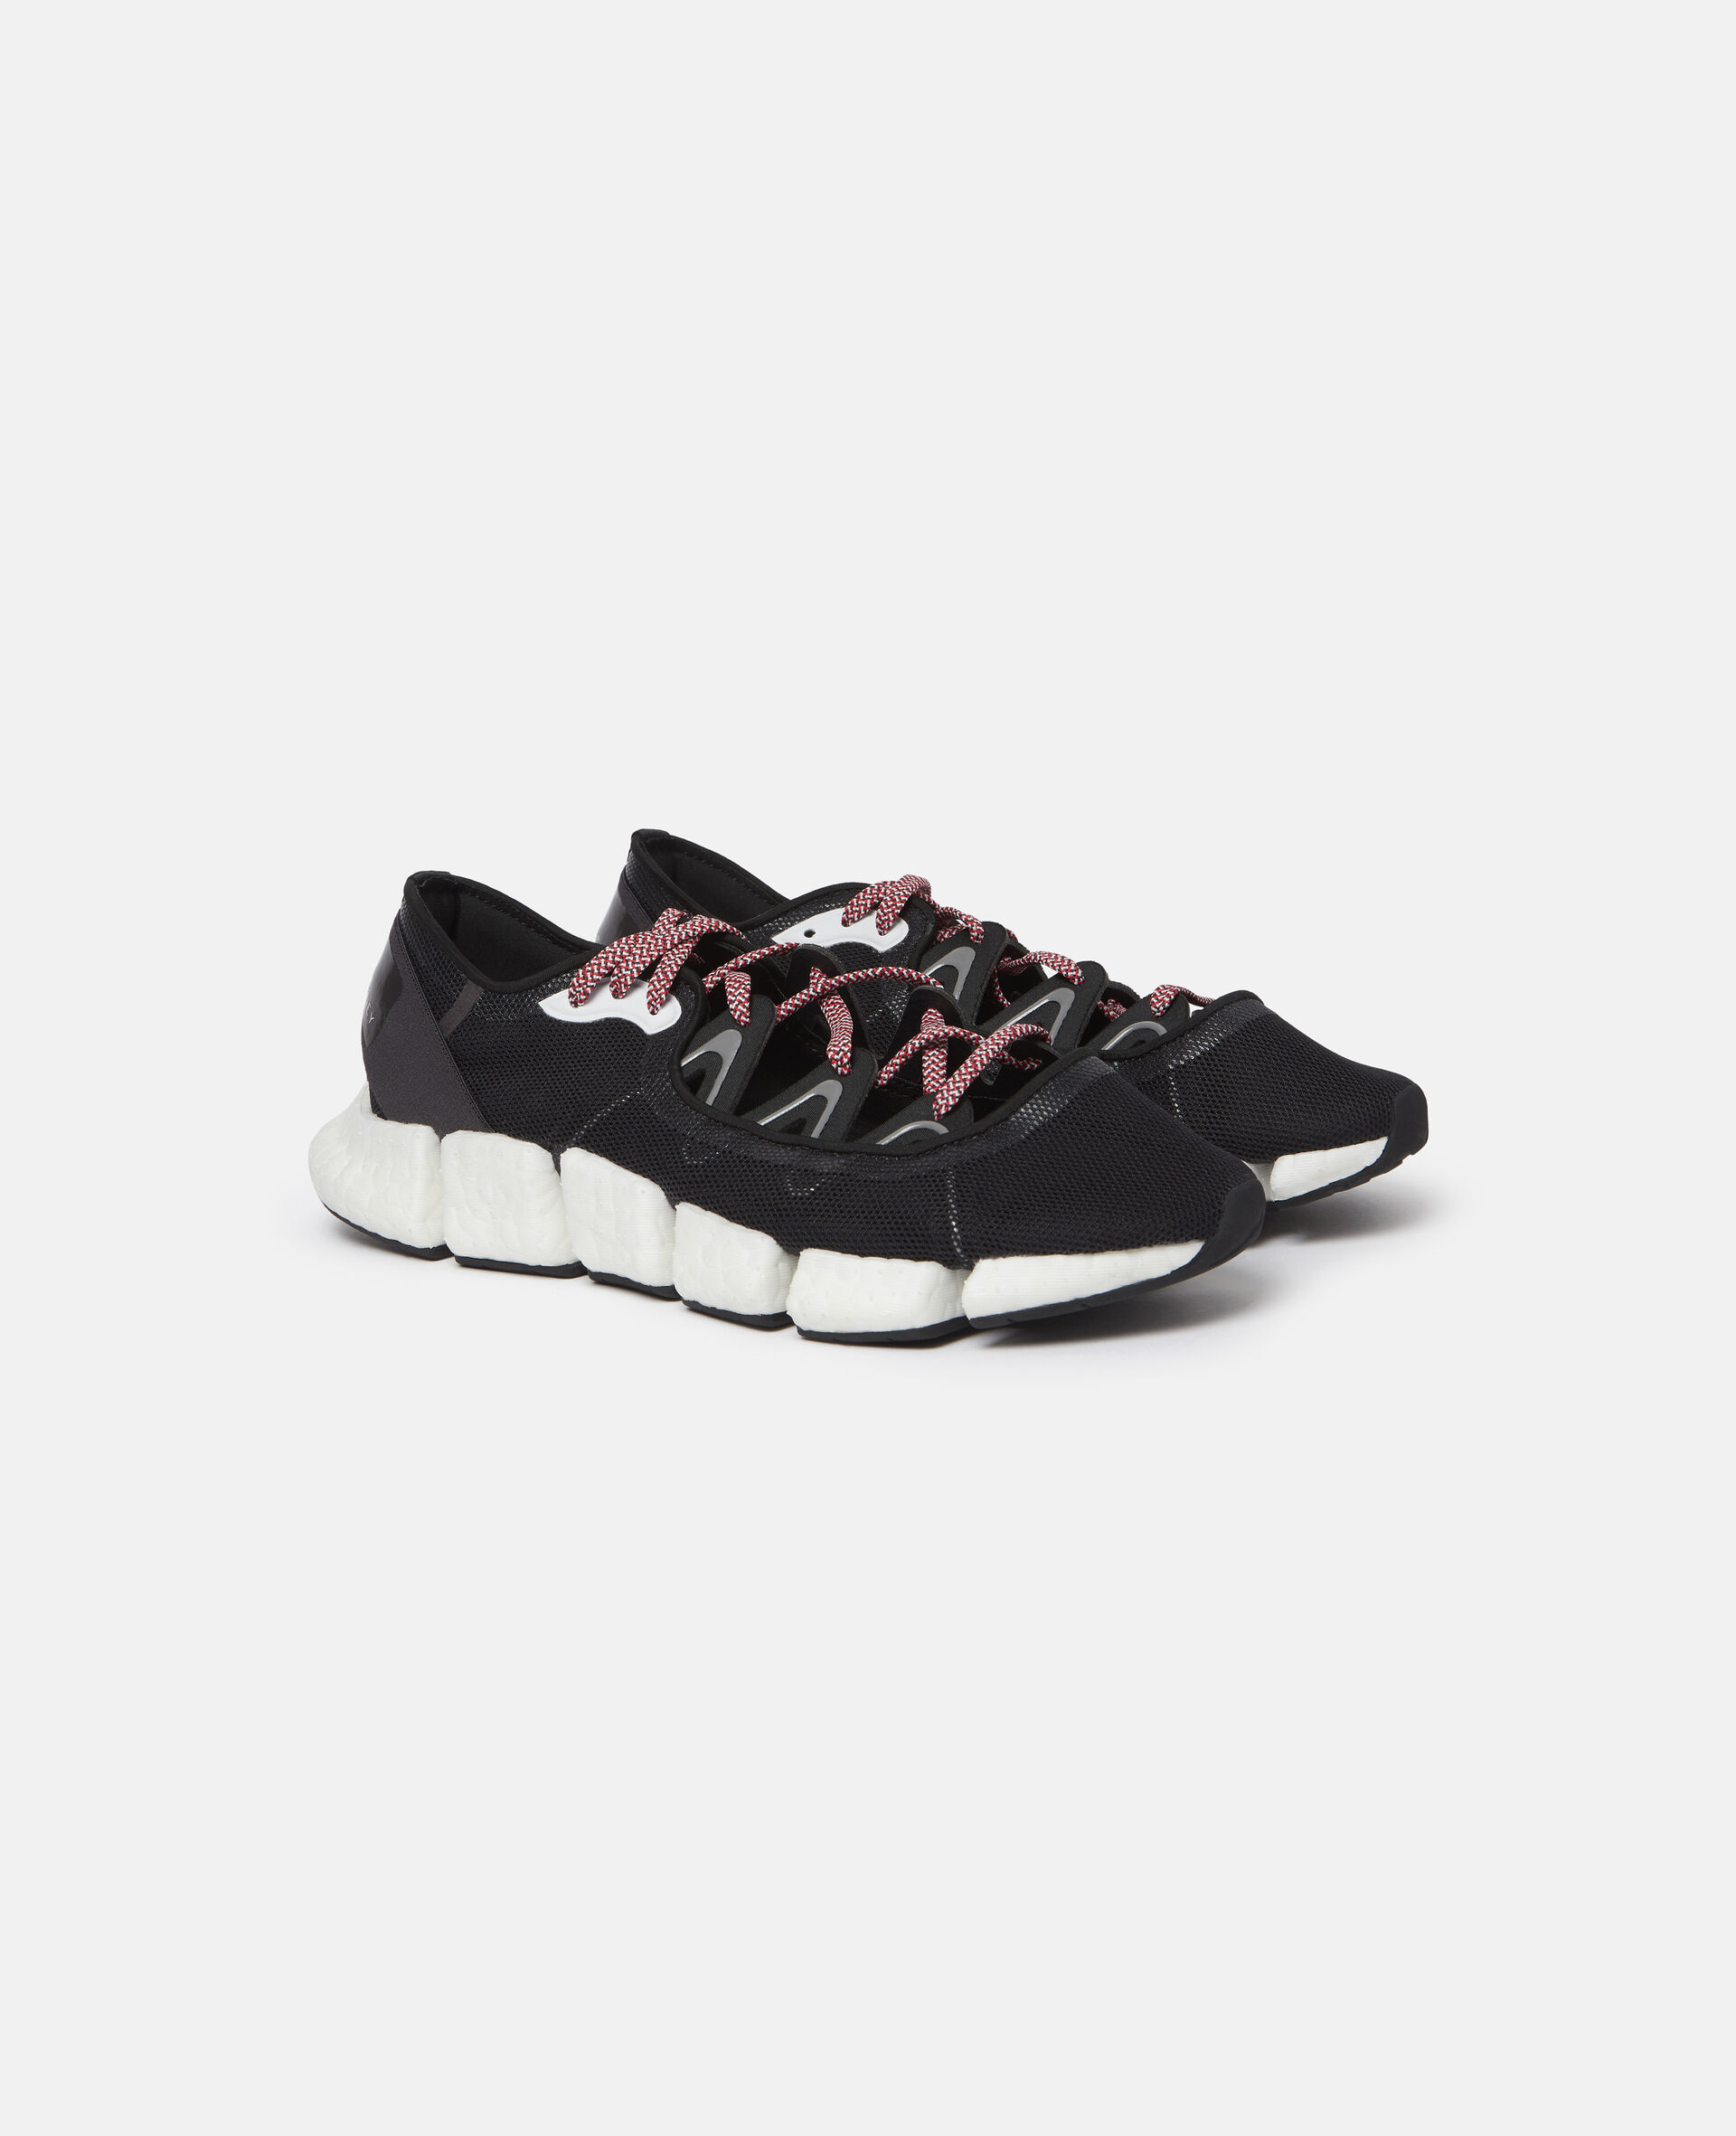 Climacool Vento 3in1 Running Trainers-Multicolour-large image number 3